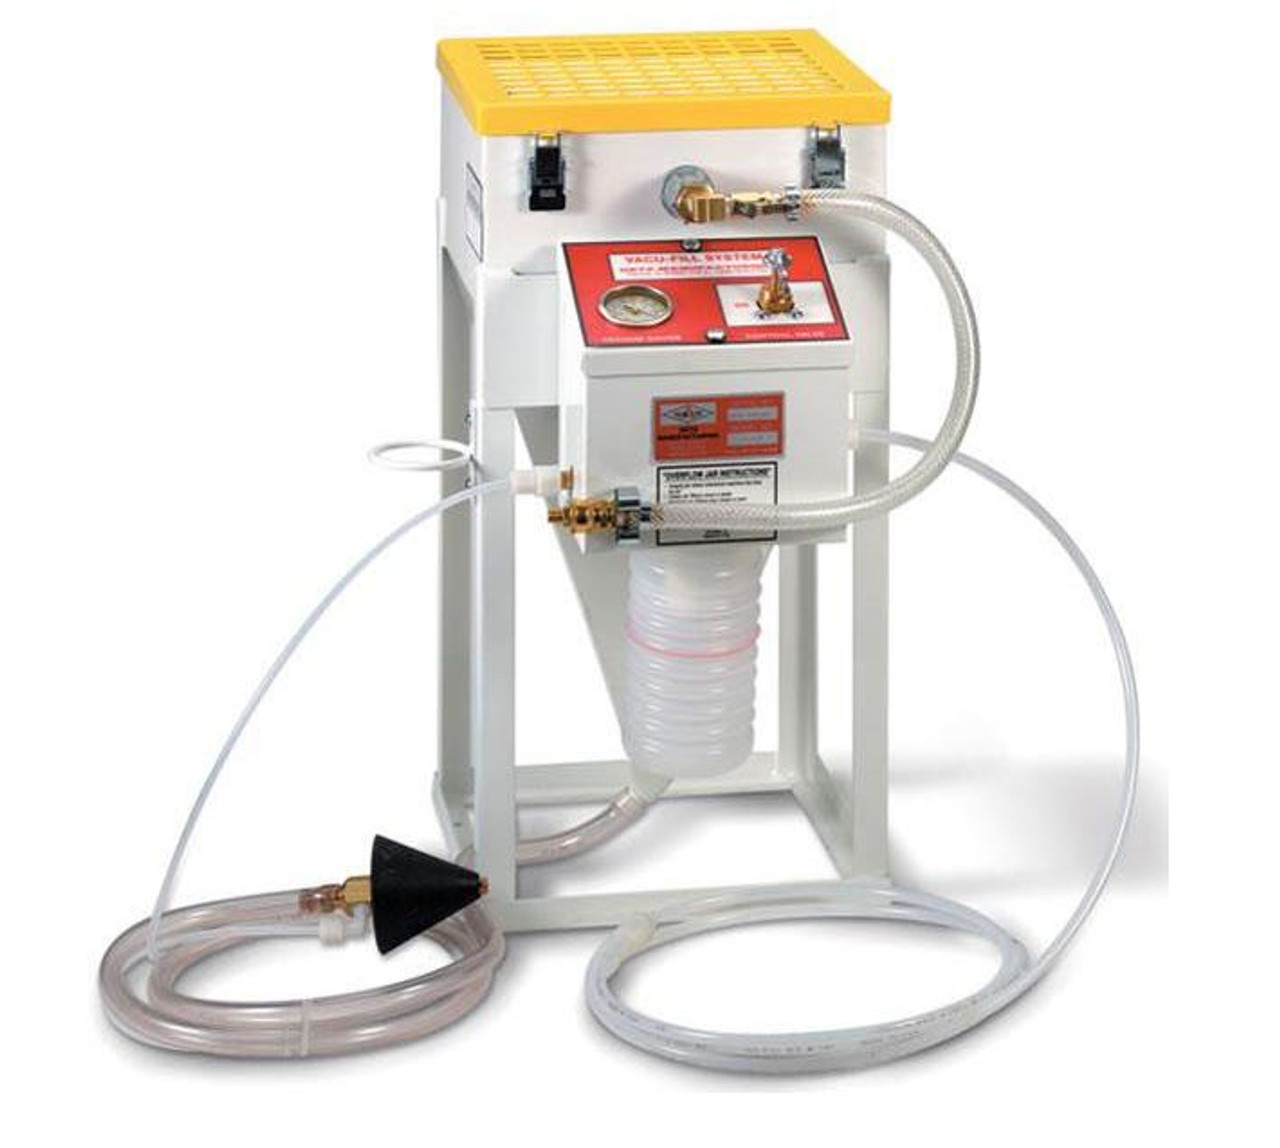 Getz Vacu-Fill Dry Chemical Filling System - 100 LBS